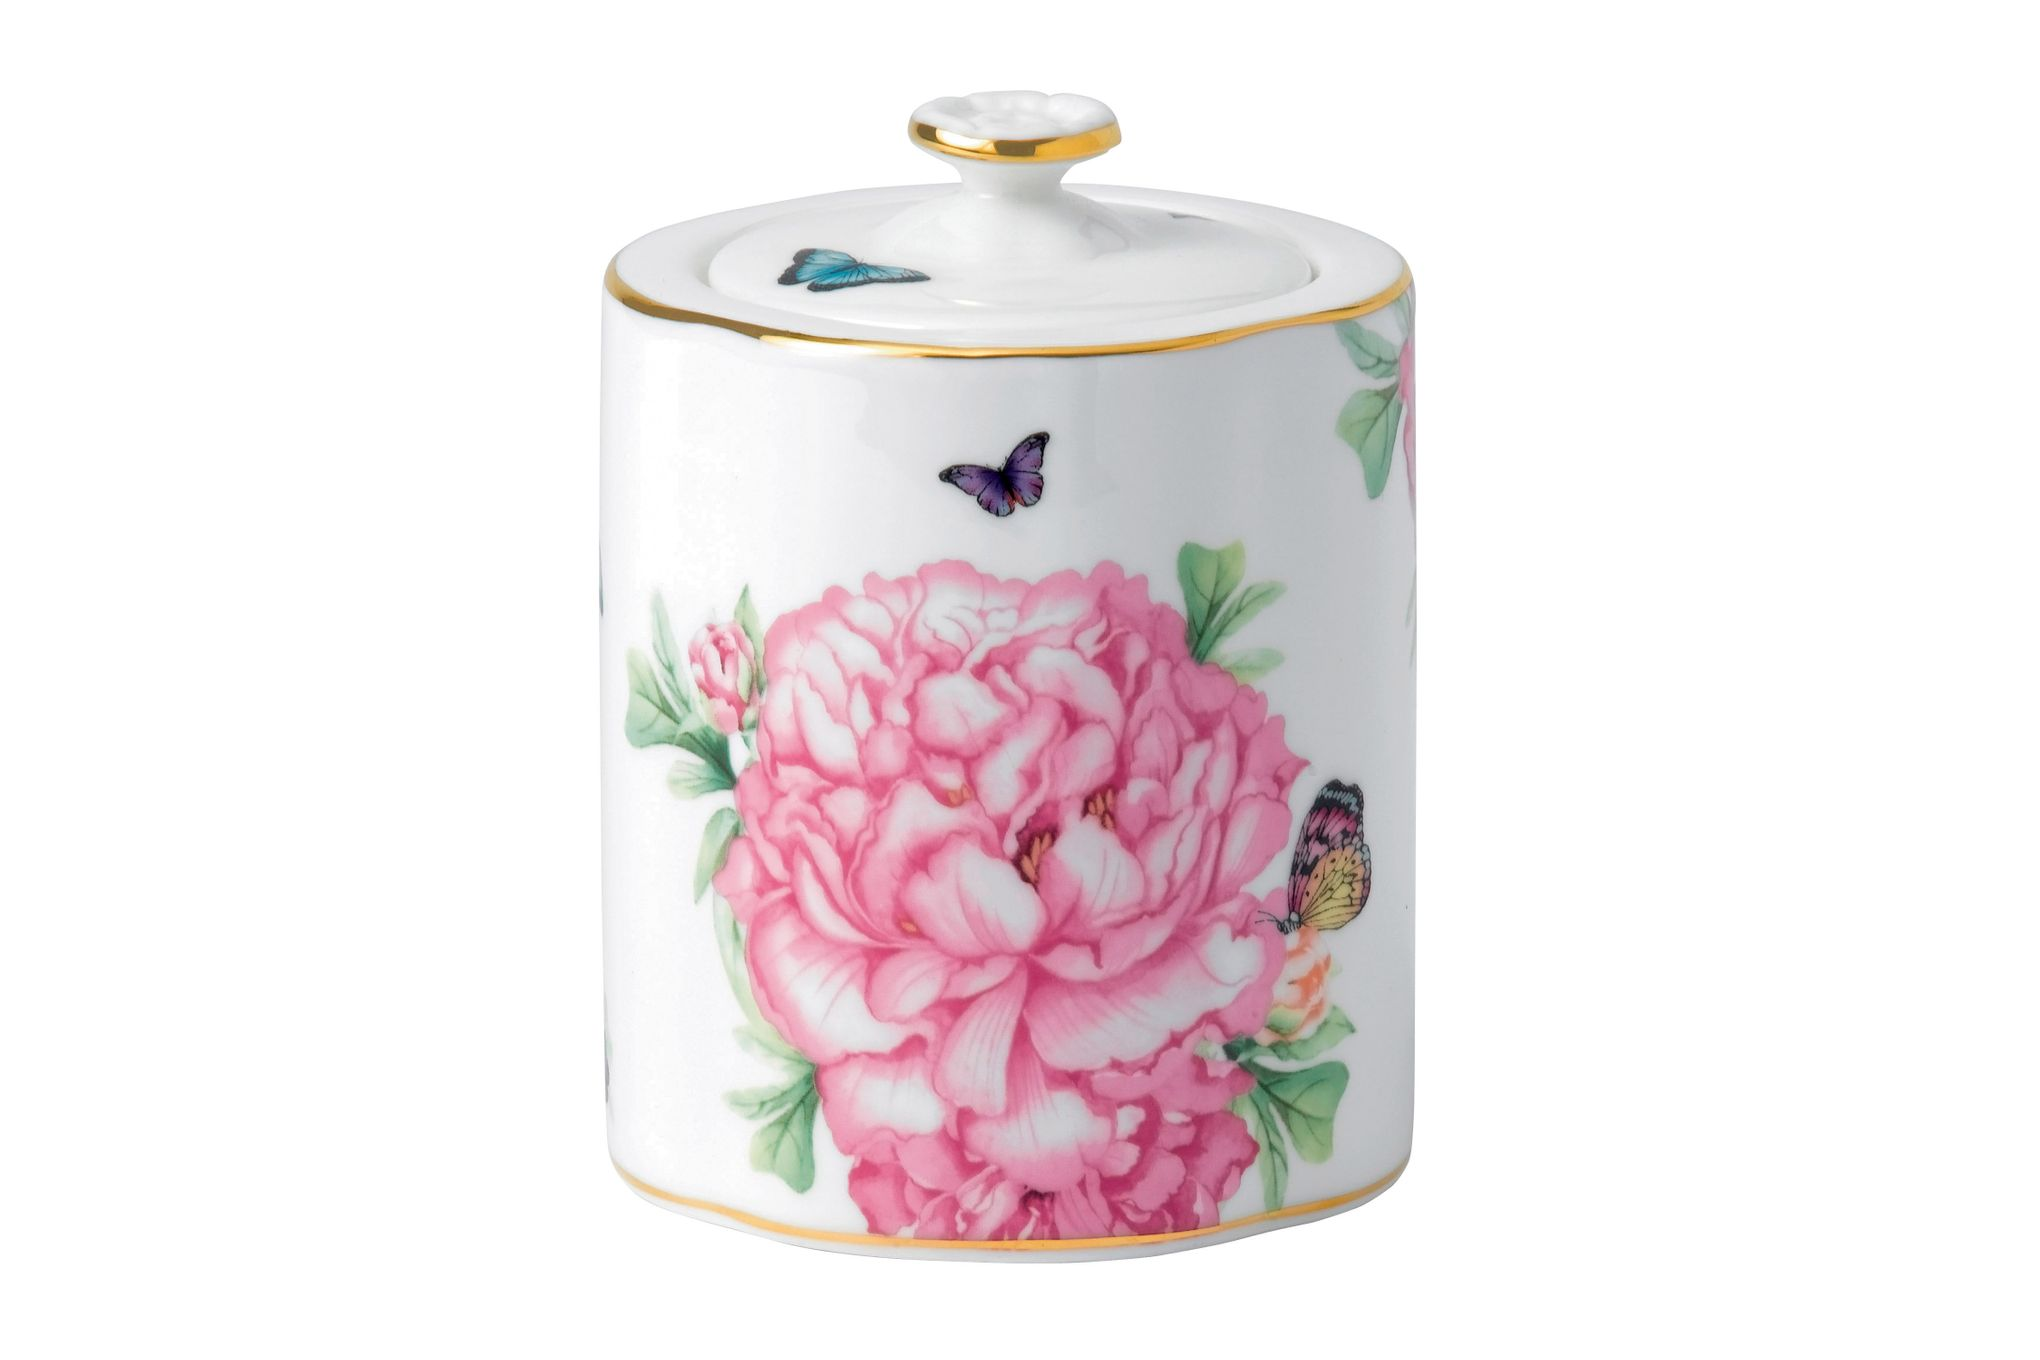 Miranda Kerr for Royal Albert Friendship Tea Caddy thumb 1